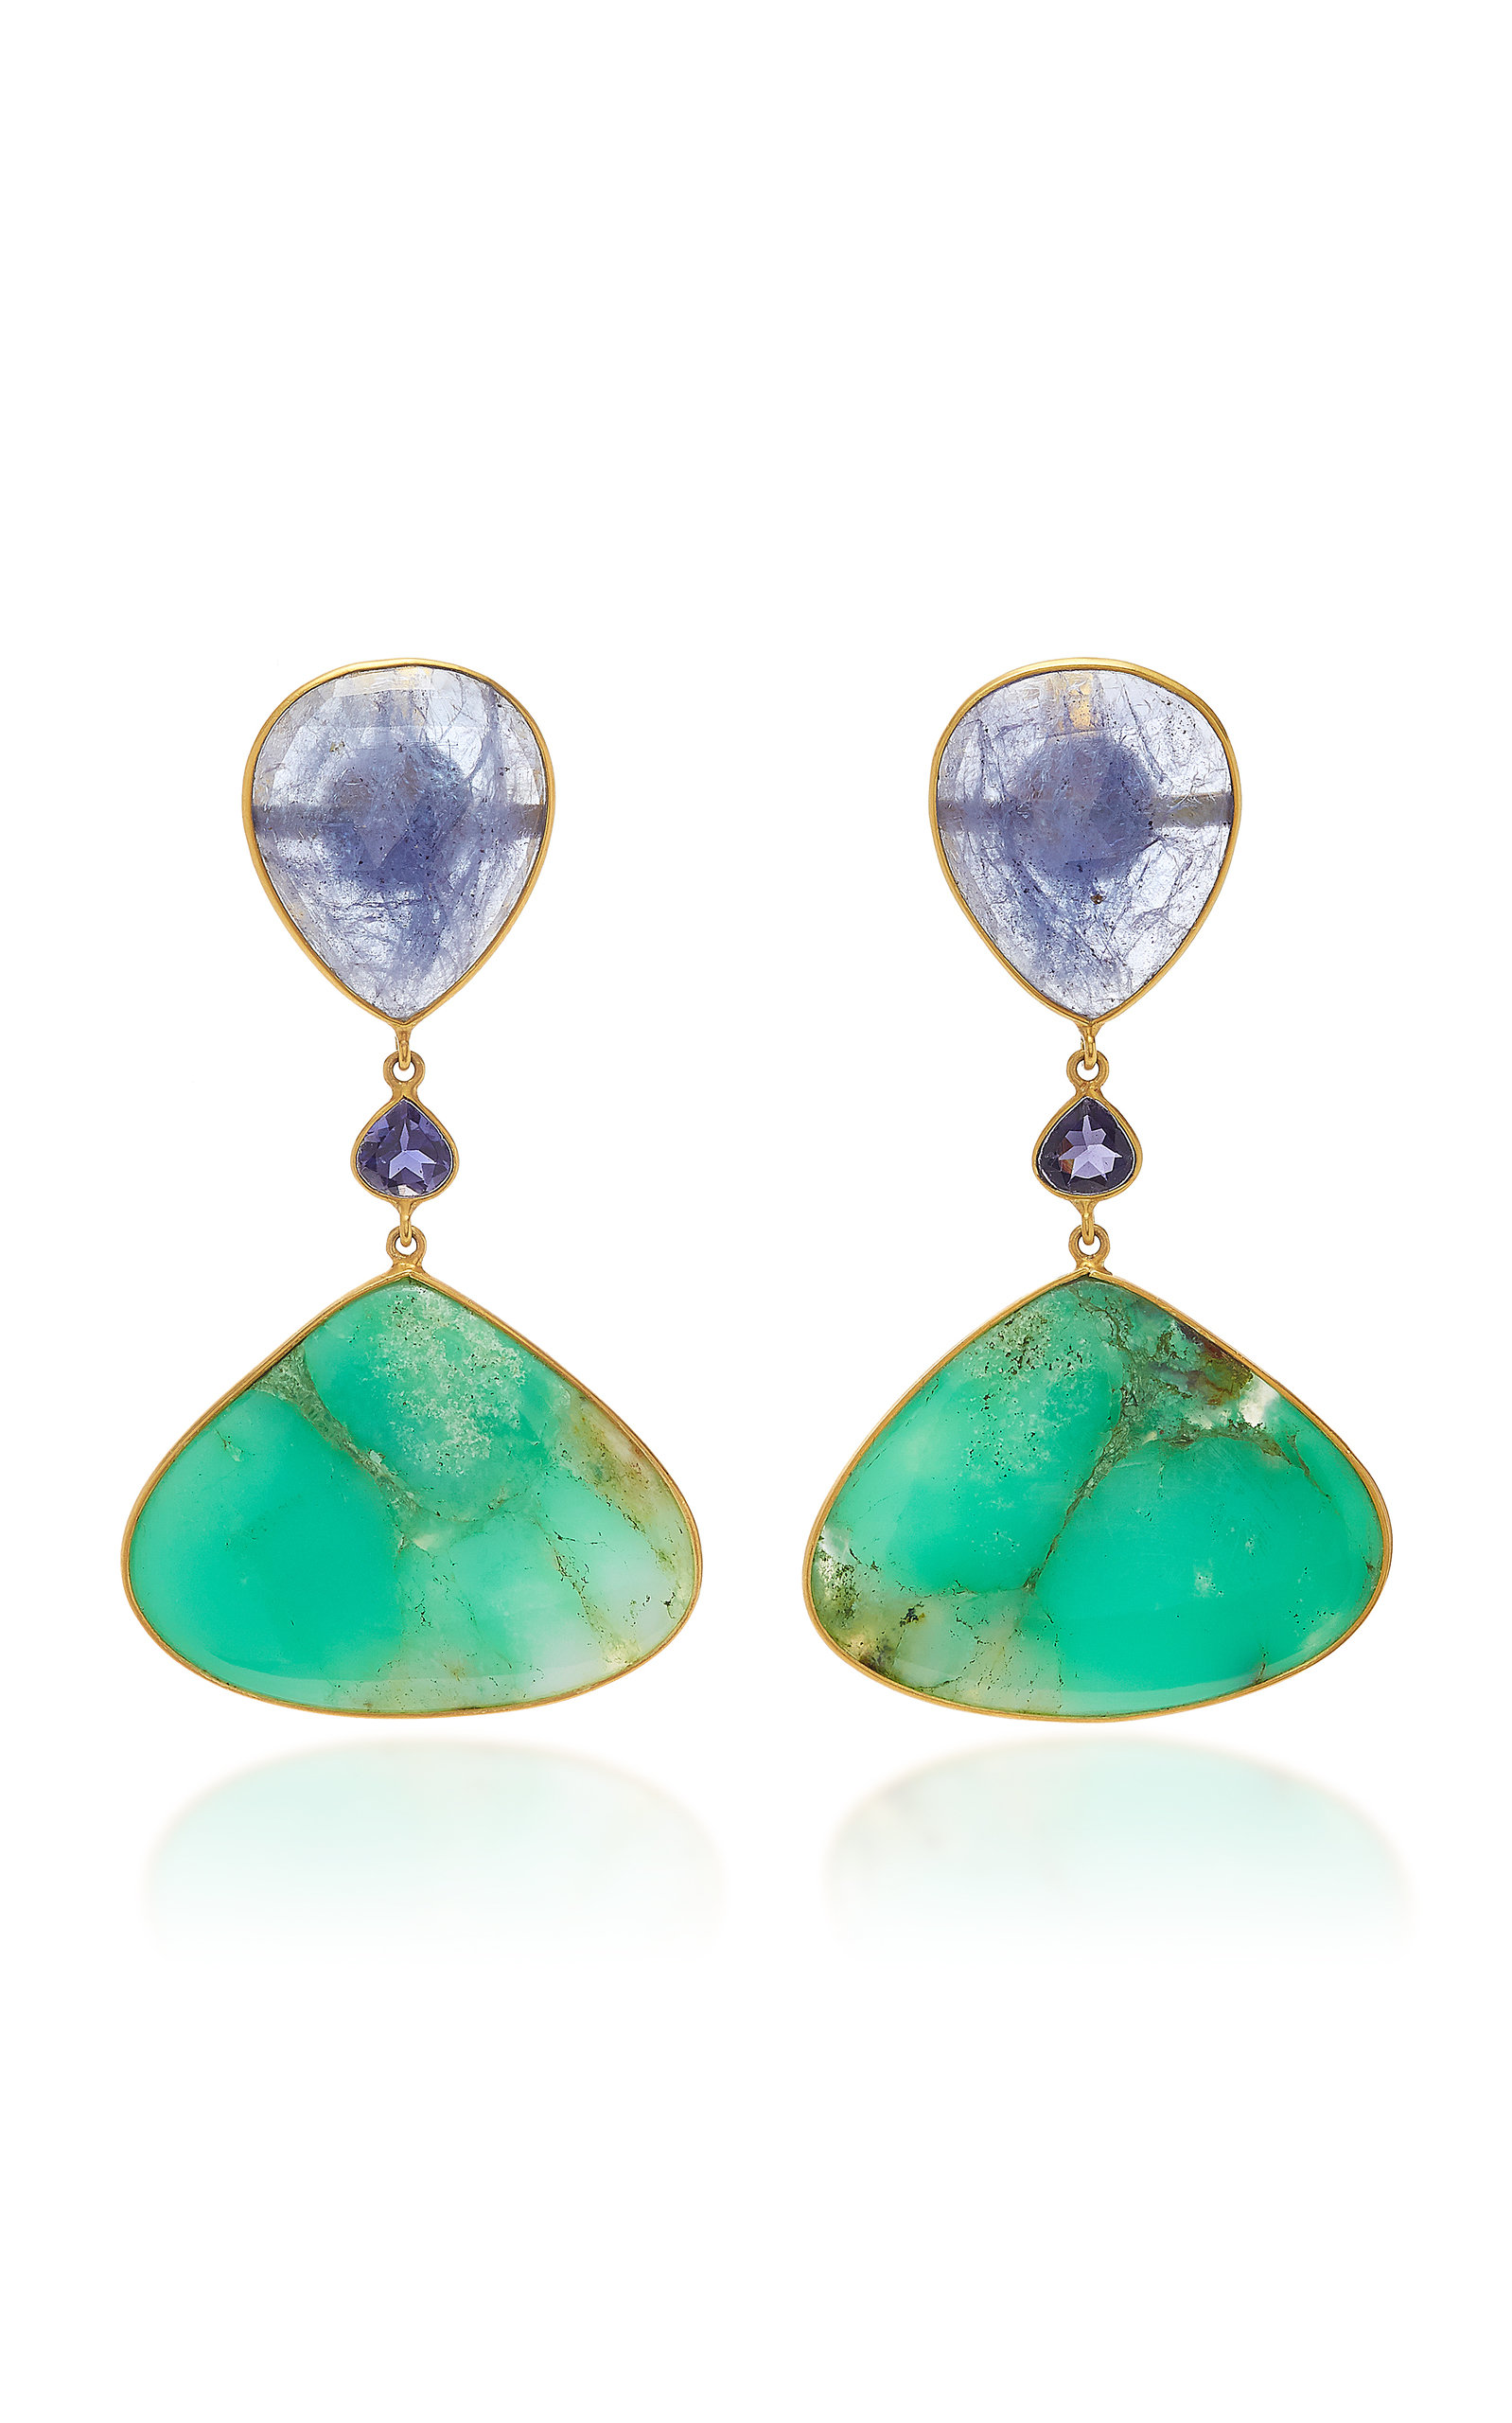 BAHINA 18K Gold Tanzanite Iolith And Chrysoprase Earrings in Green